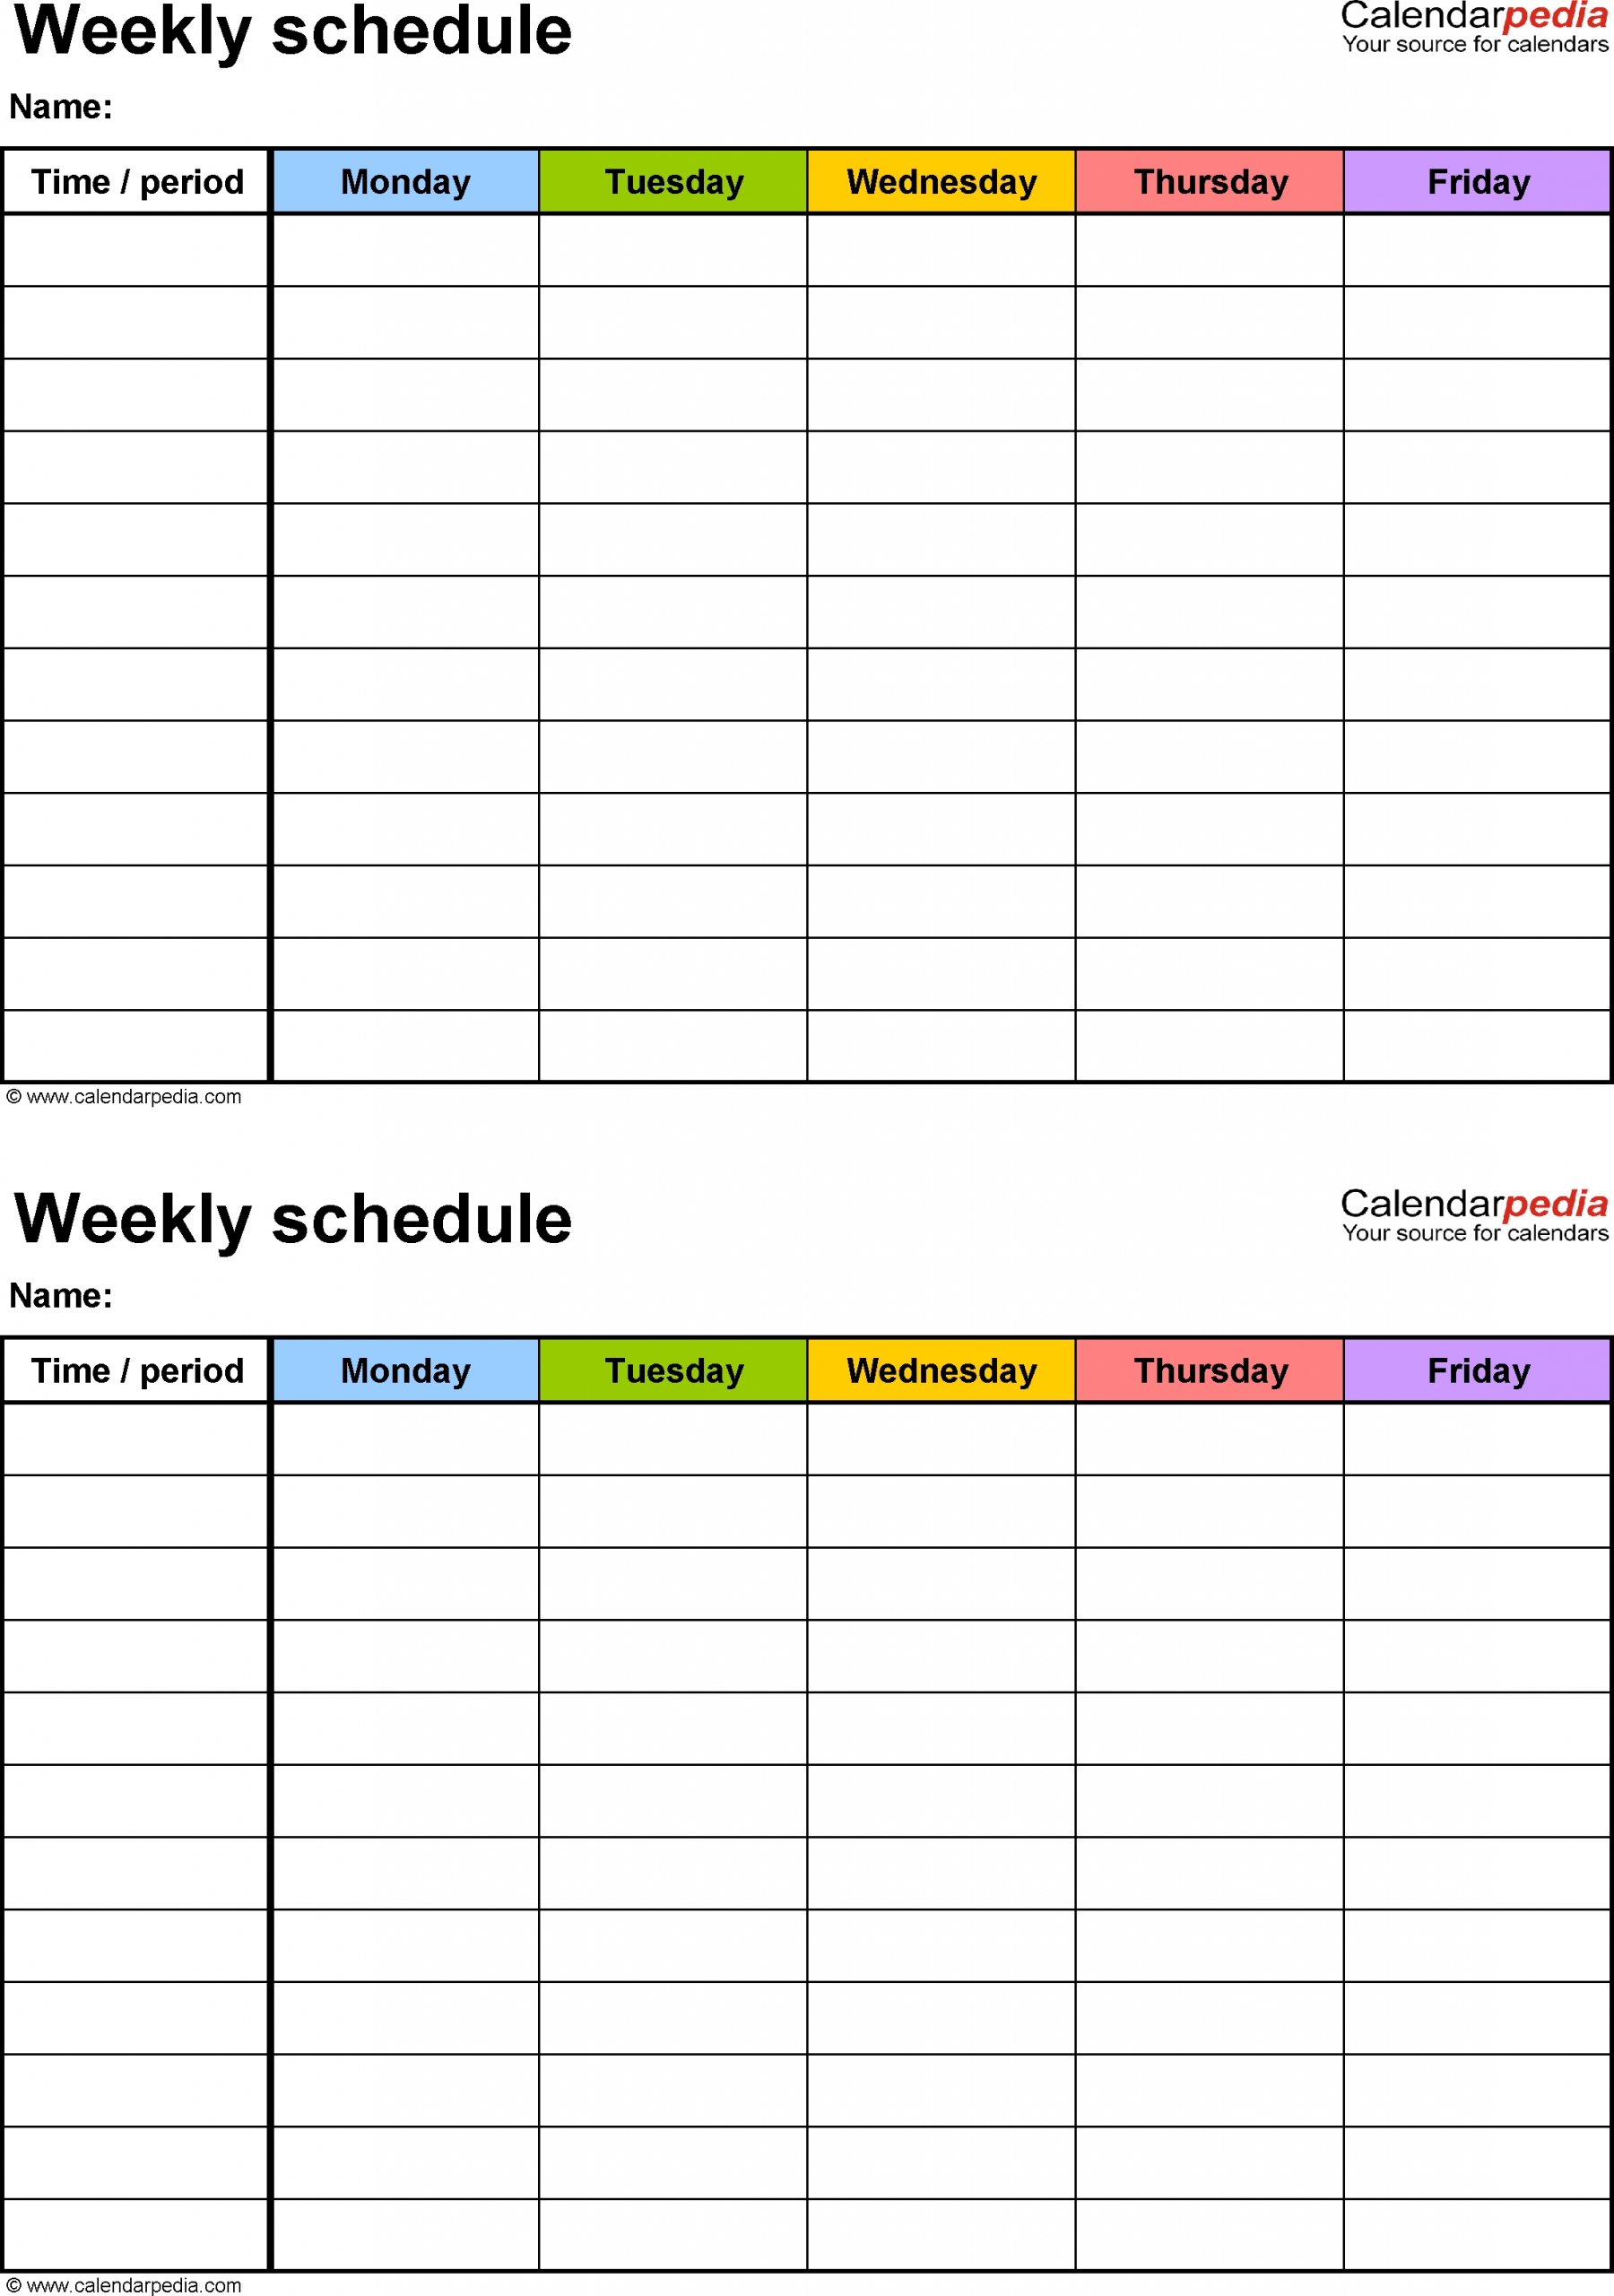 Blank Calendar Monday To Friday | Calendar Template Printable Monday To Friday Blank Week Schedule